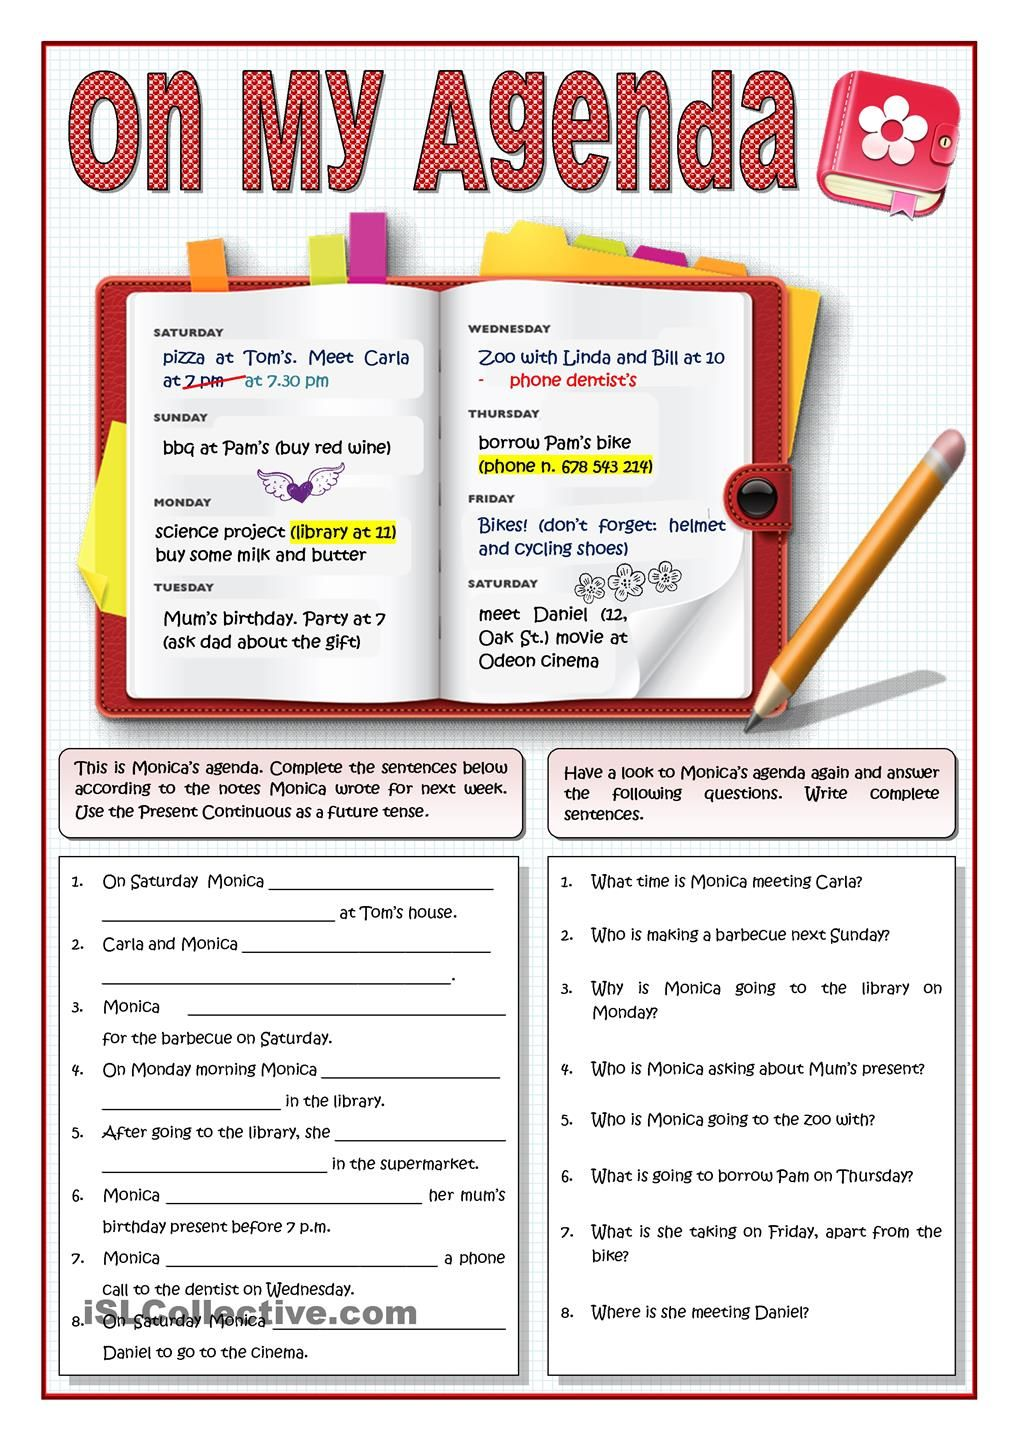 On My Agenda Present Continuous For Fixed Plans Grammar Practice Reading Comprehension Worksheets Reading Worksheets [ 1440 x 1018 Pixel ]